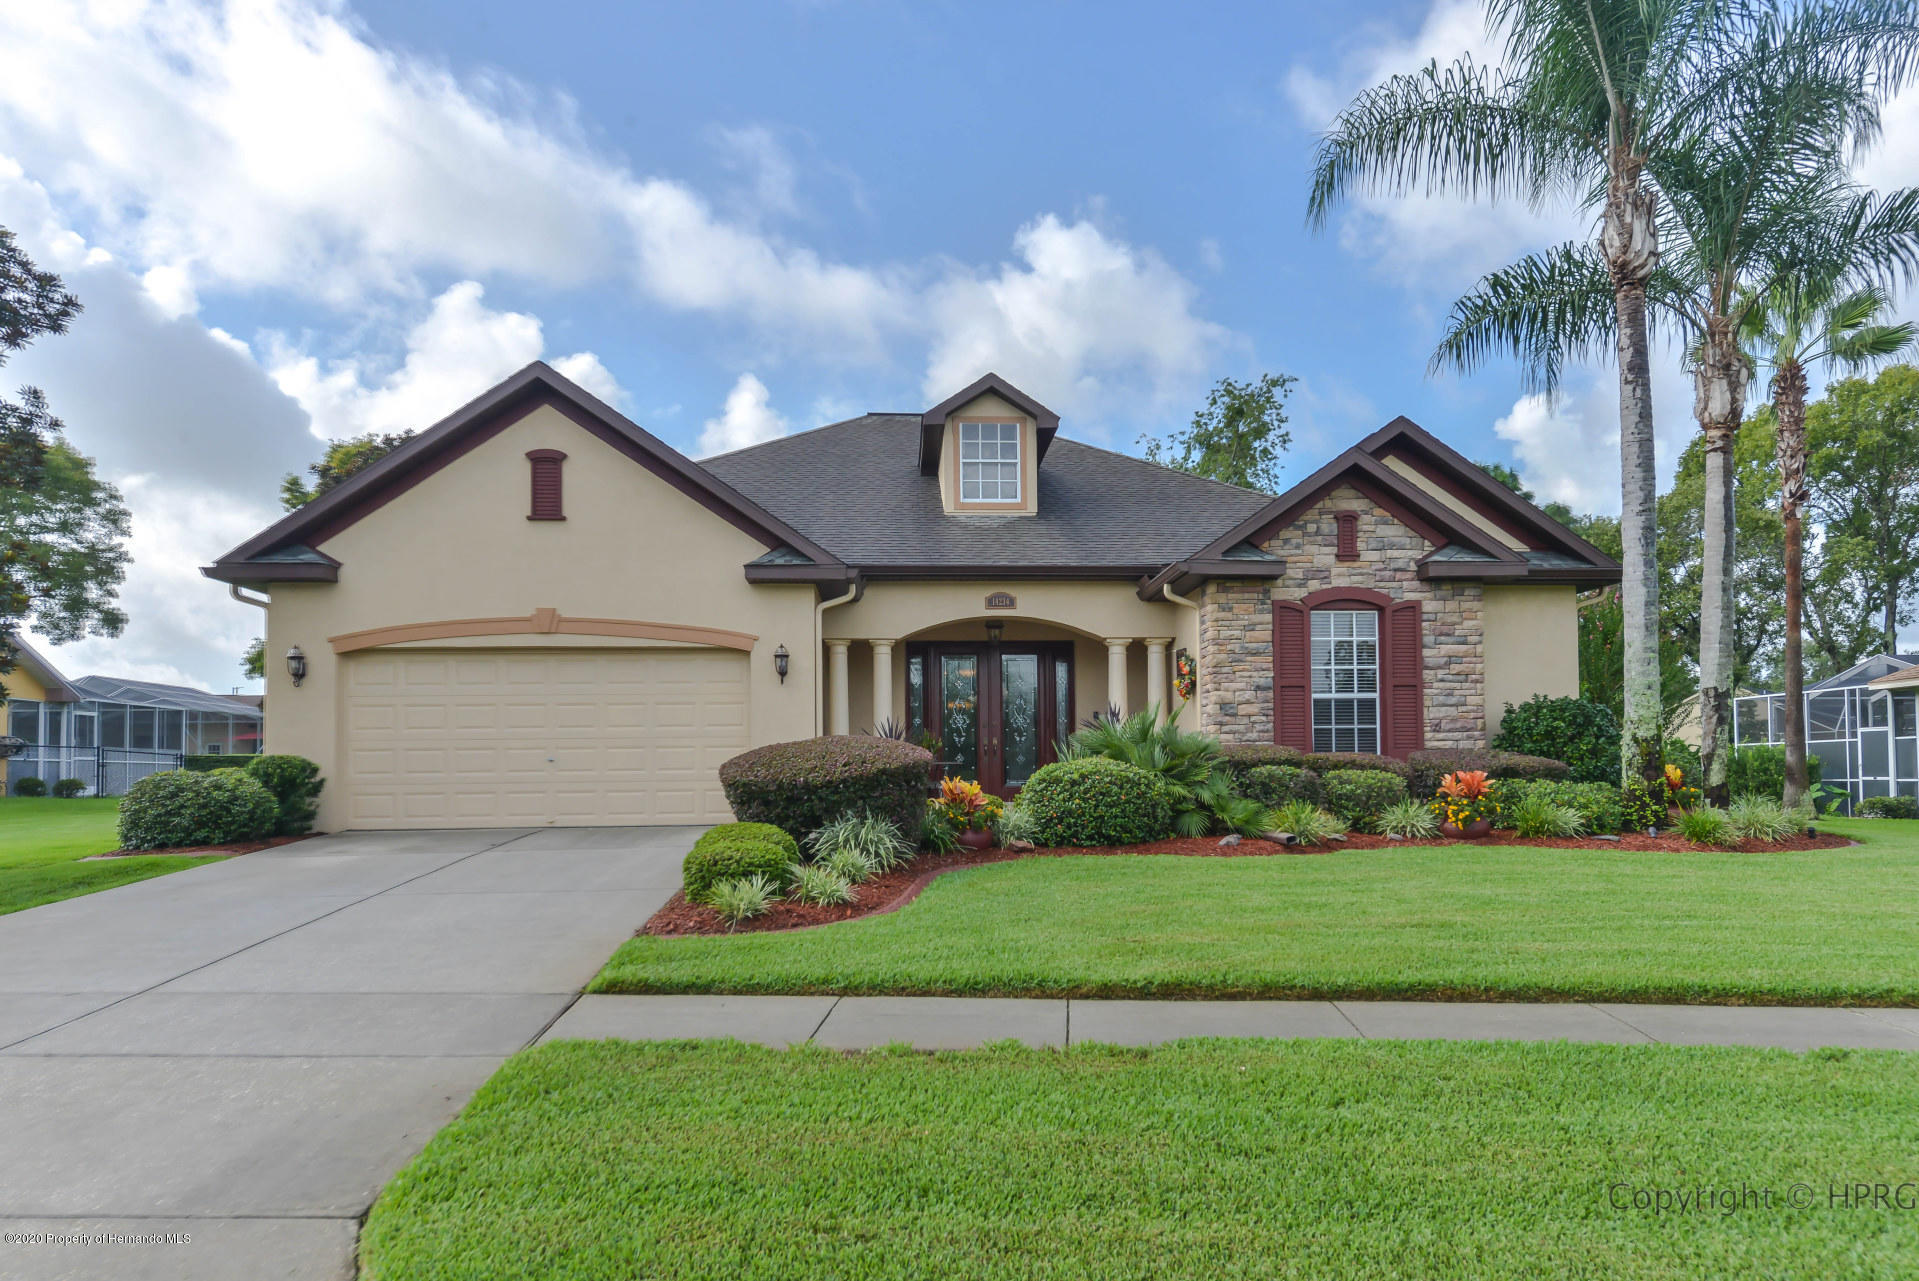 Details for 14234 Cornewall Lane, Spring Hill, FL 34609